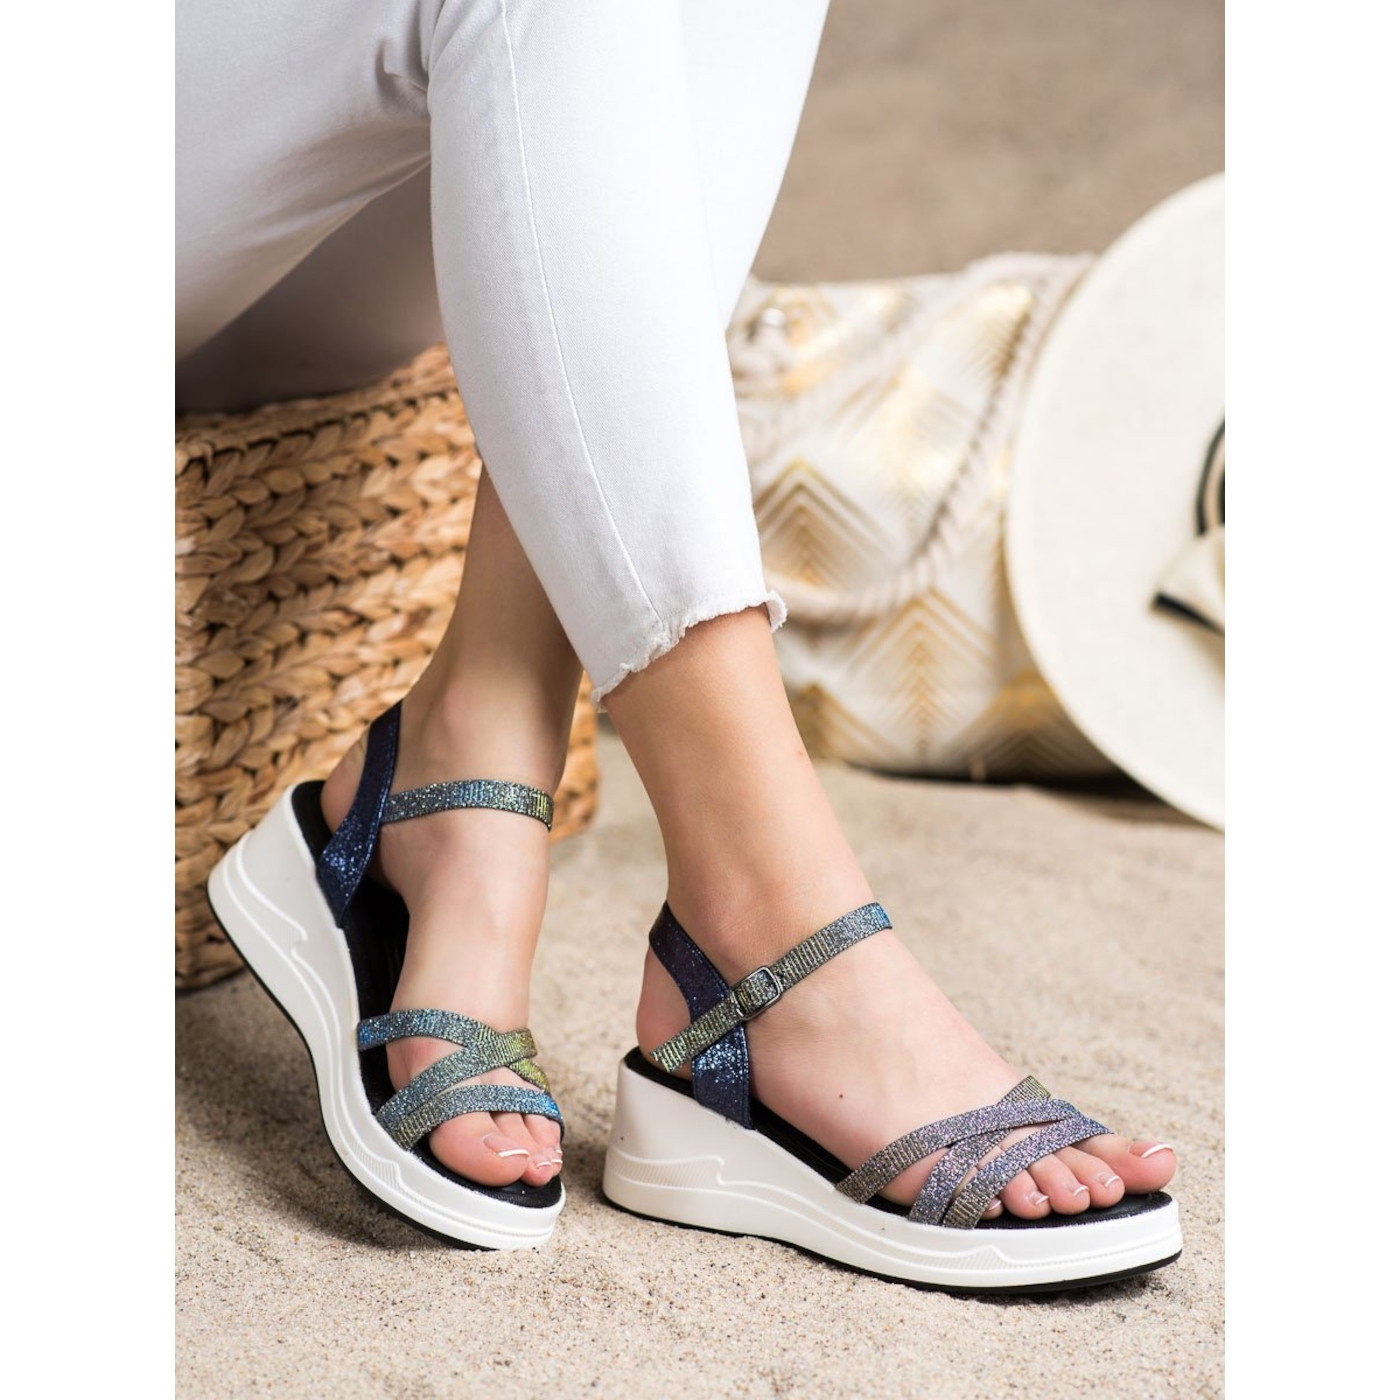 SMALL SWAN GLITTER SANDALS ON THE WED